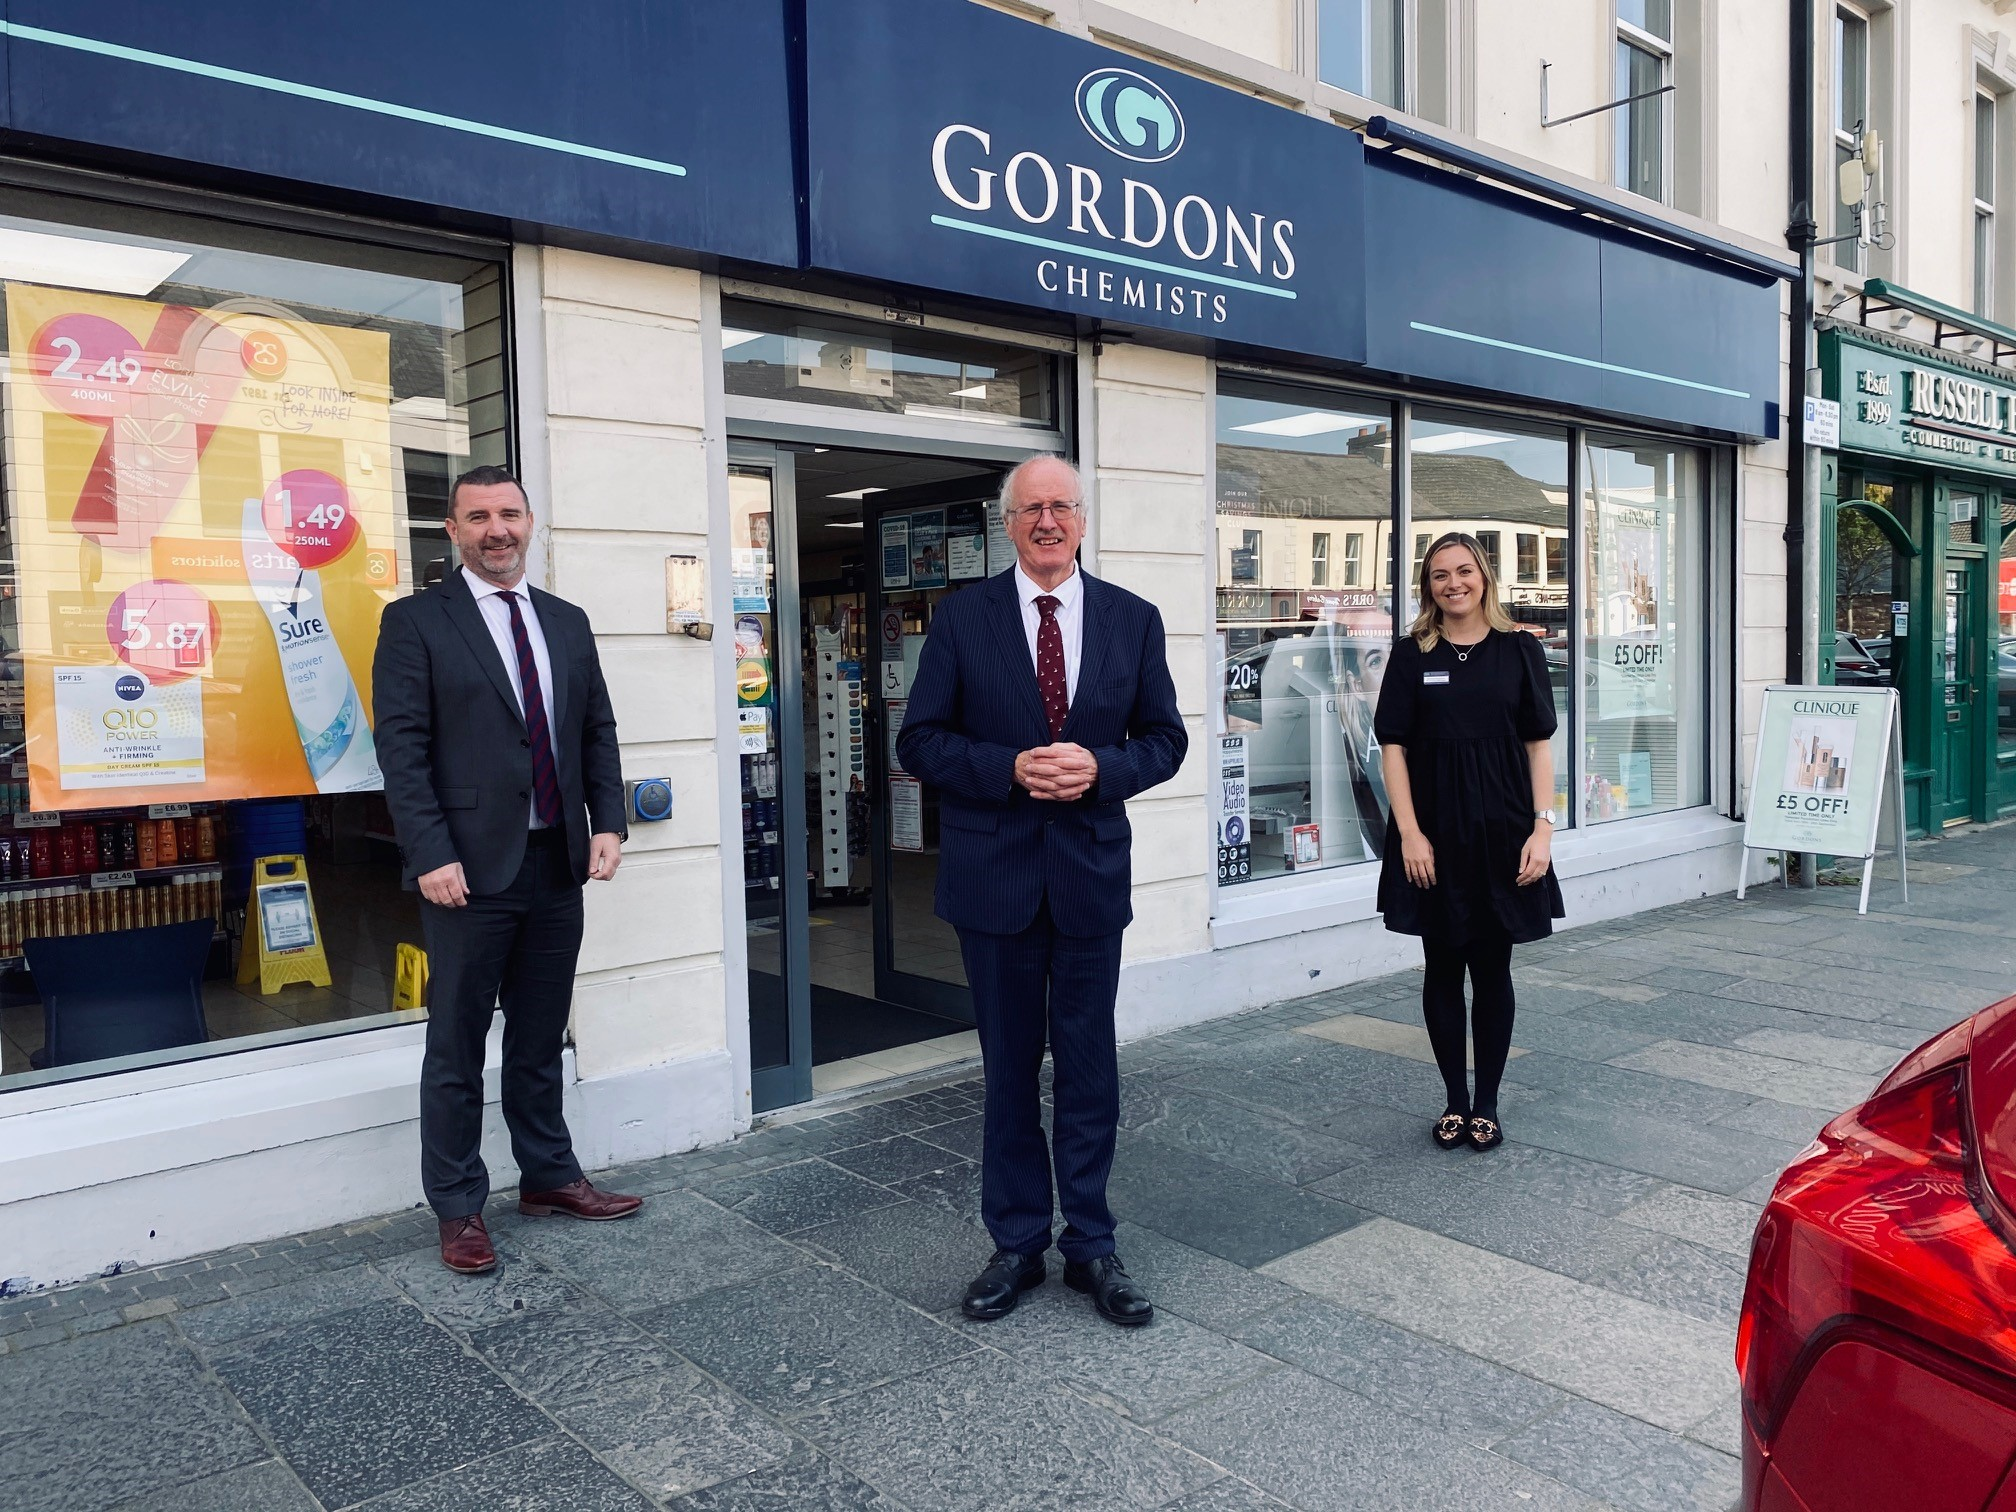 MP visit community pharmacy to hear of challenges faced during pandemic